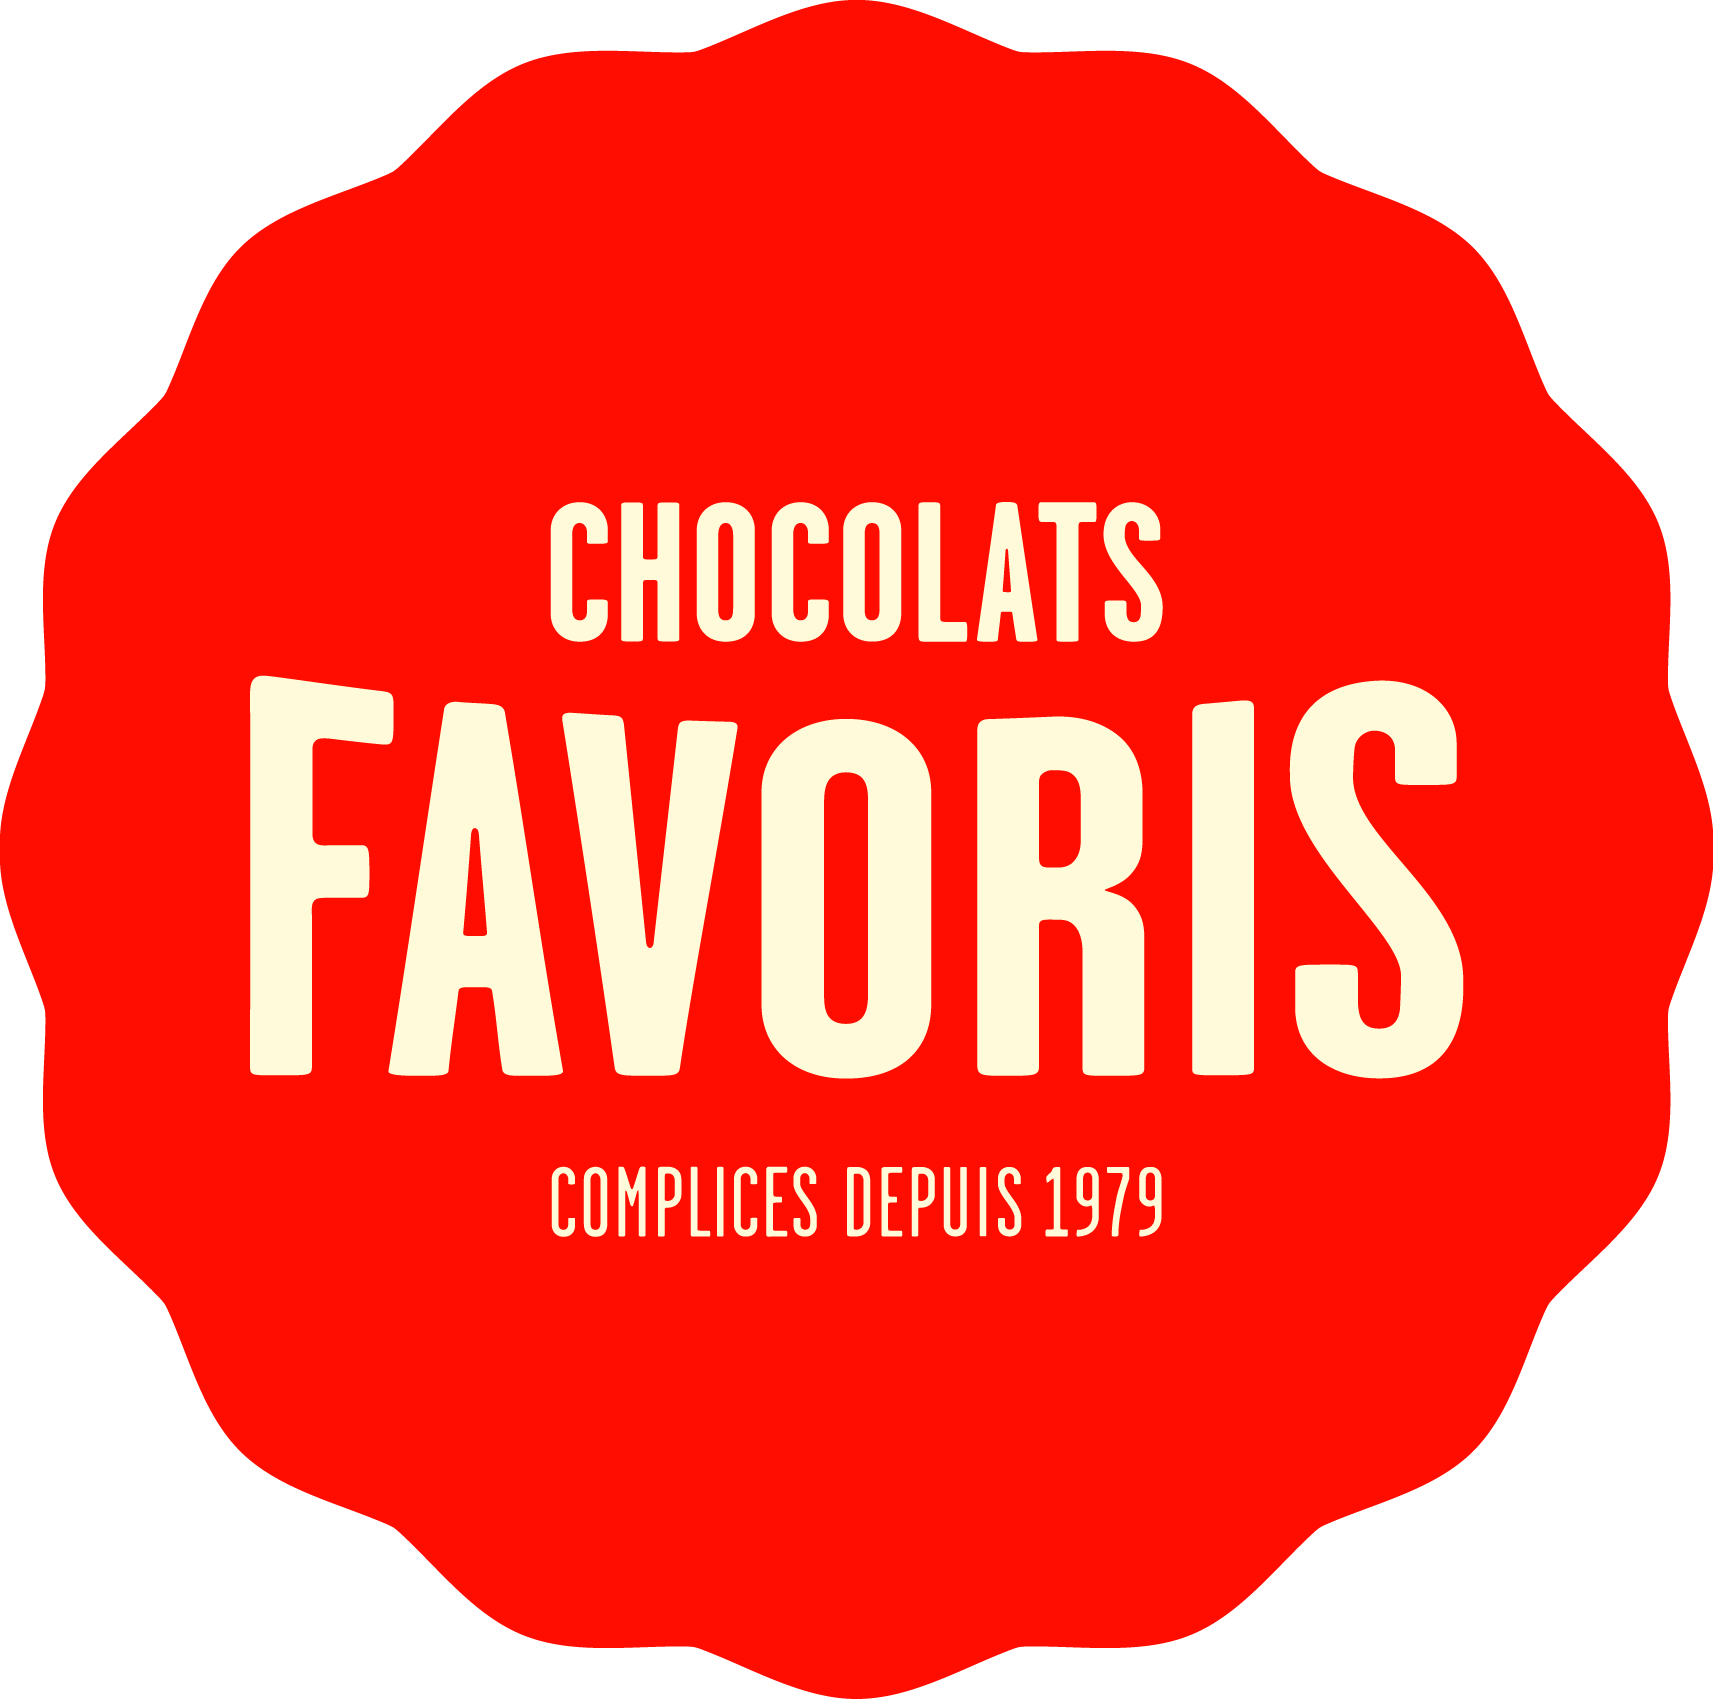 chocolatfavoris